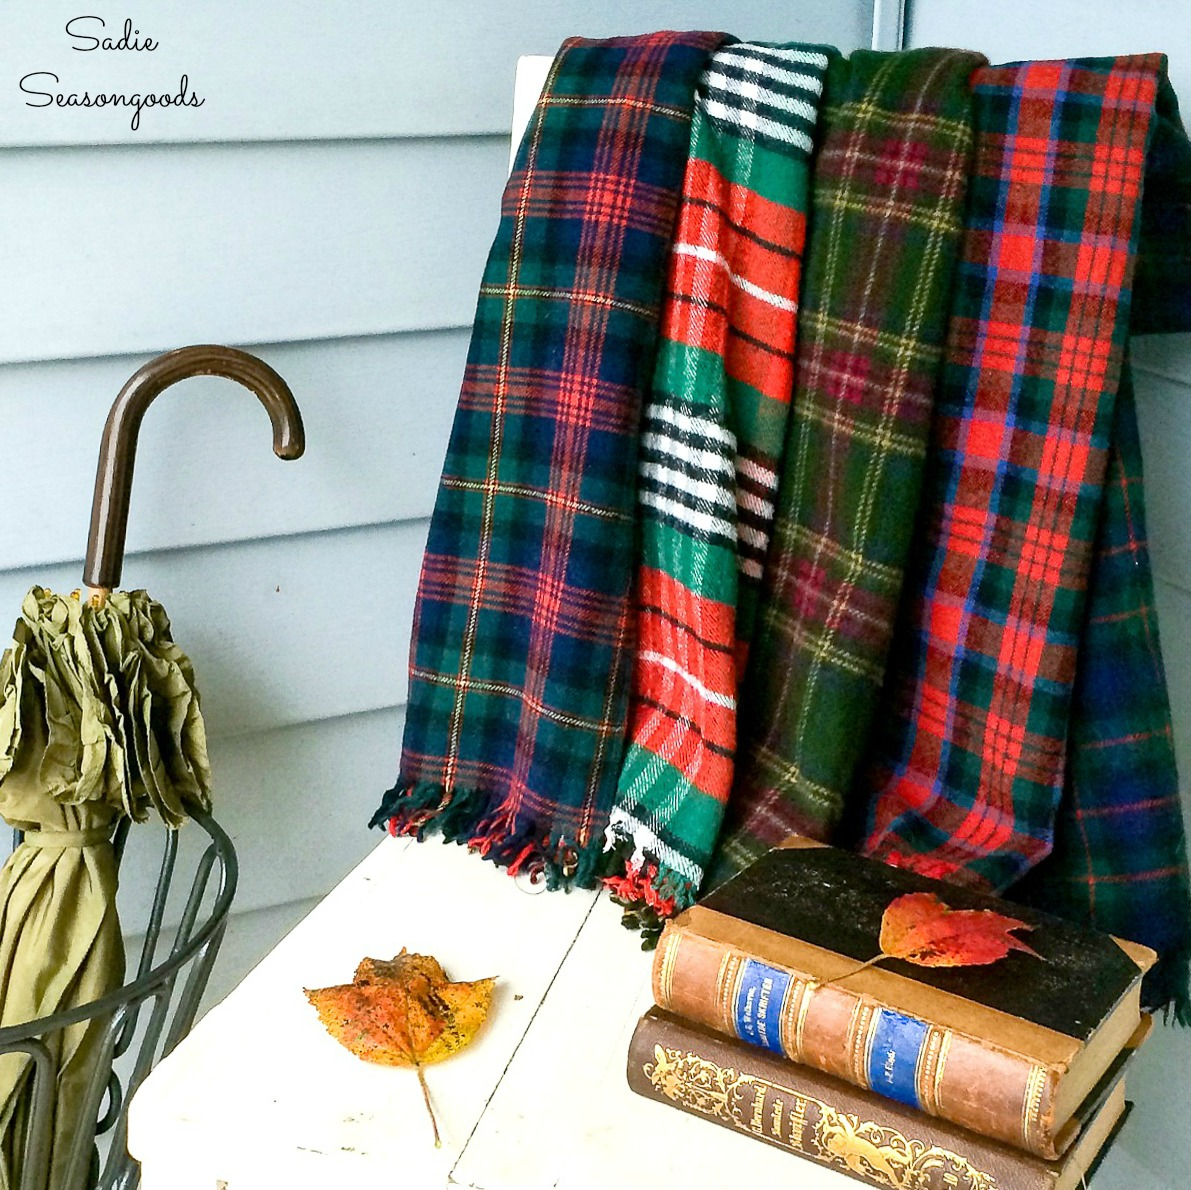 Plaid Blanket or Tartan Throw with Wool Scarves